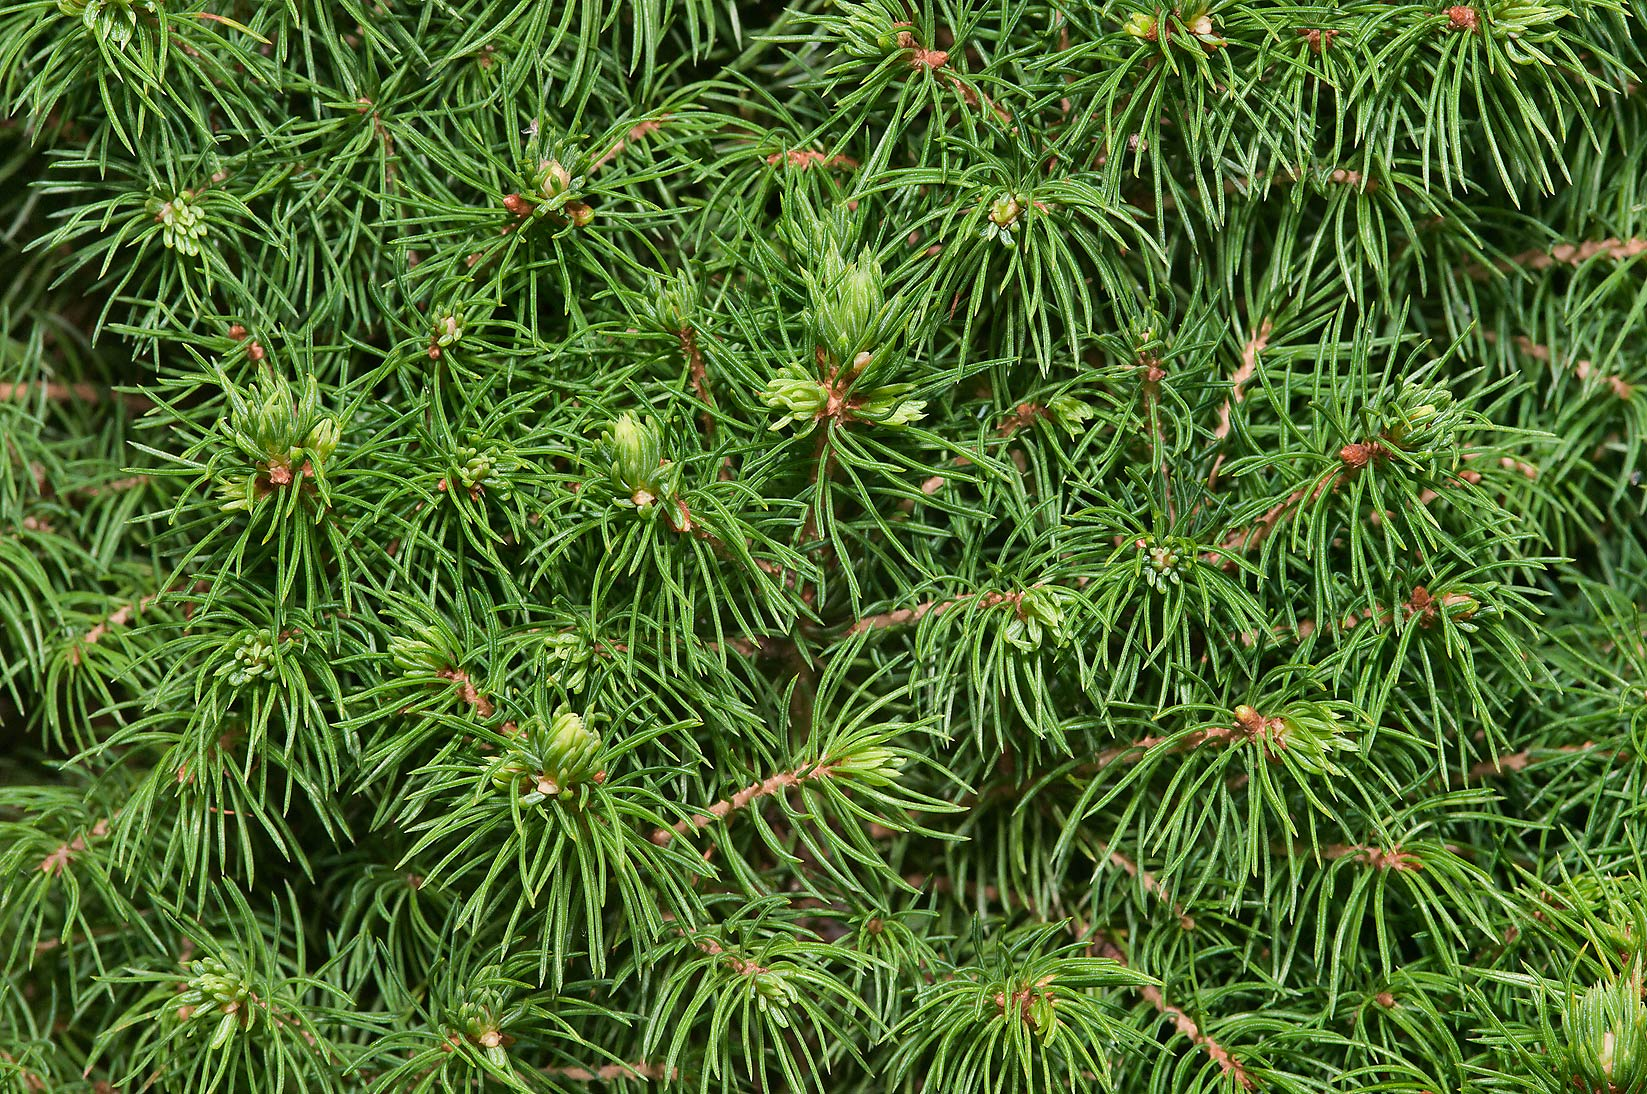 Pine needles in Botanic Gardens of Komarov Botanical Institute. St.Petersburg, Russia